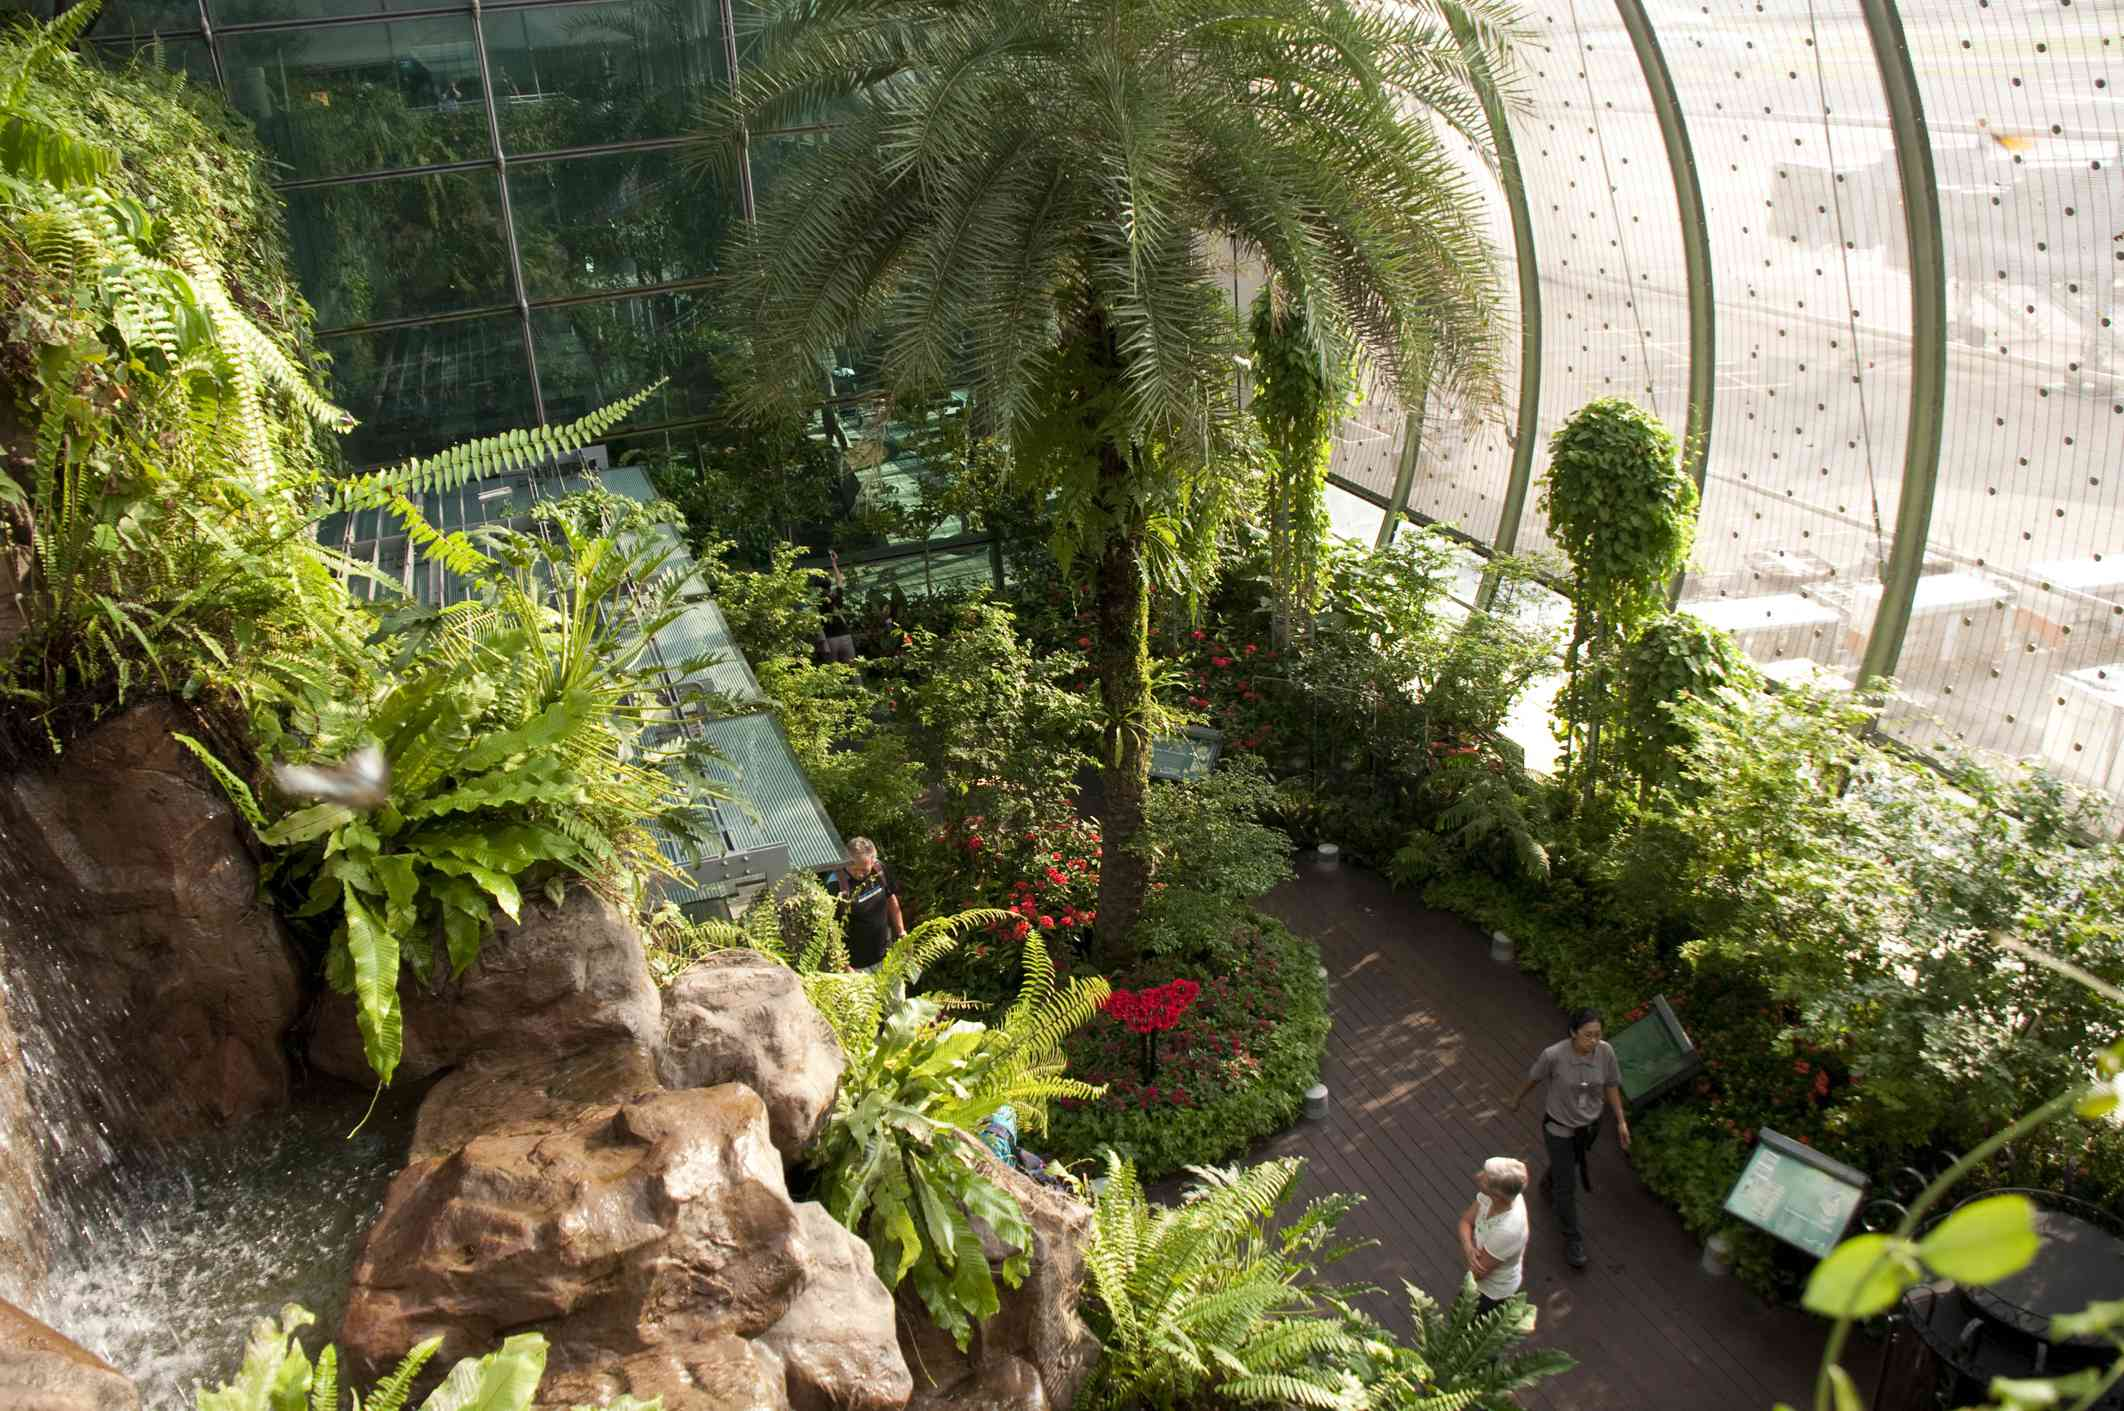 a curved glass window, lush greenery ,and ferns of the Butterfly Garden of Singapore Changi Airport